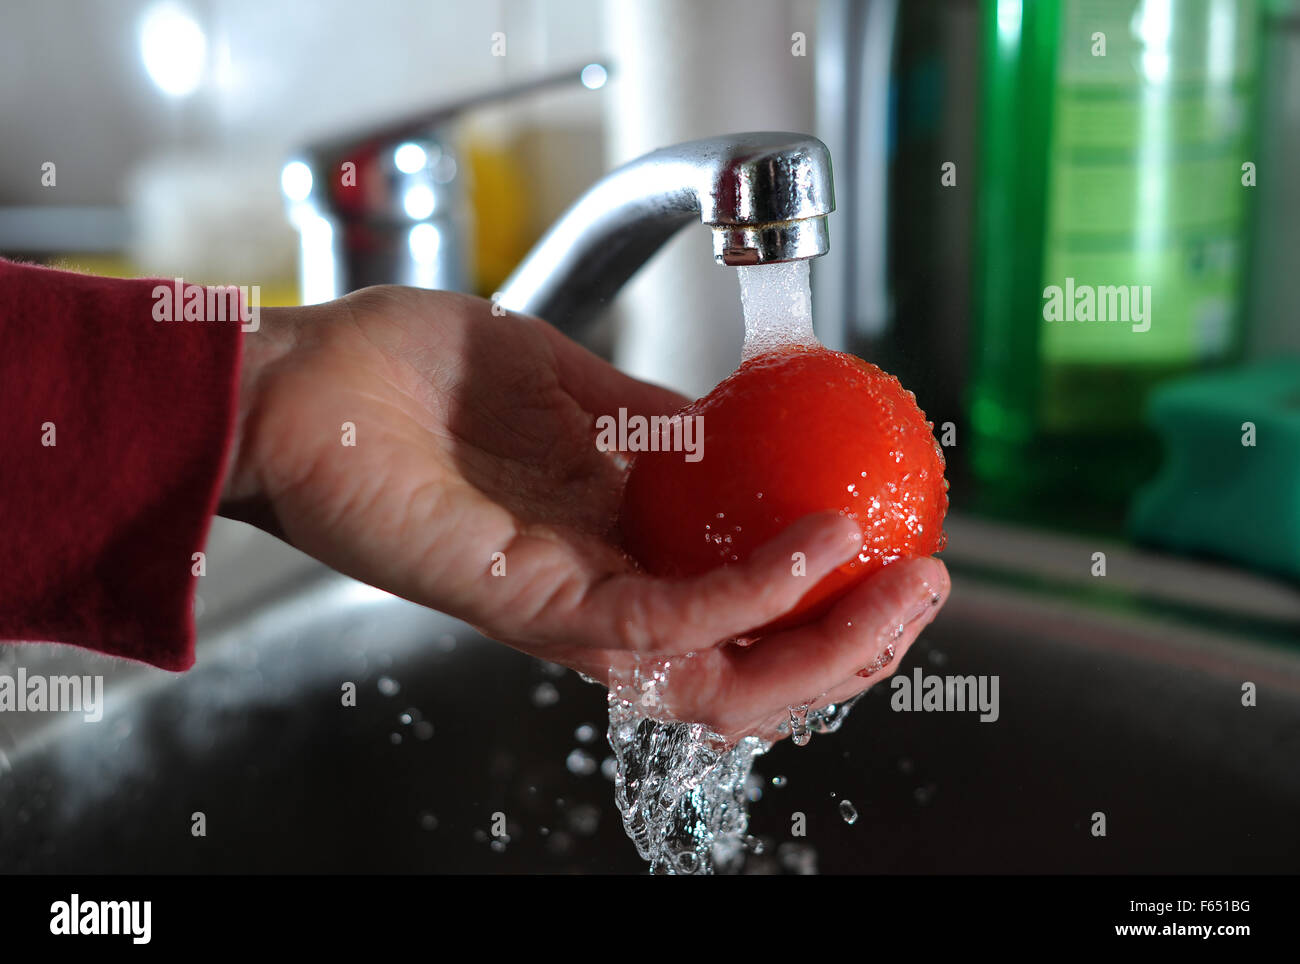 Illustration - A tomato is washed up in Dresden (Saxony), Germany, 11 March 2013. Photo: Thomas Eisenhuth Stock Photo